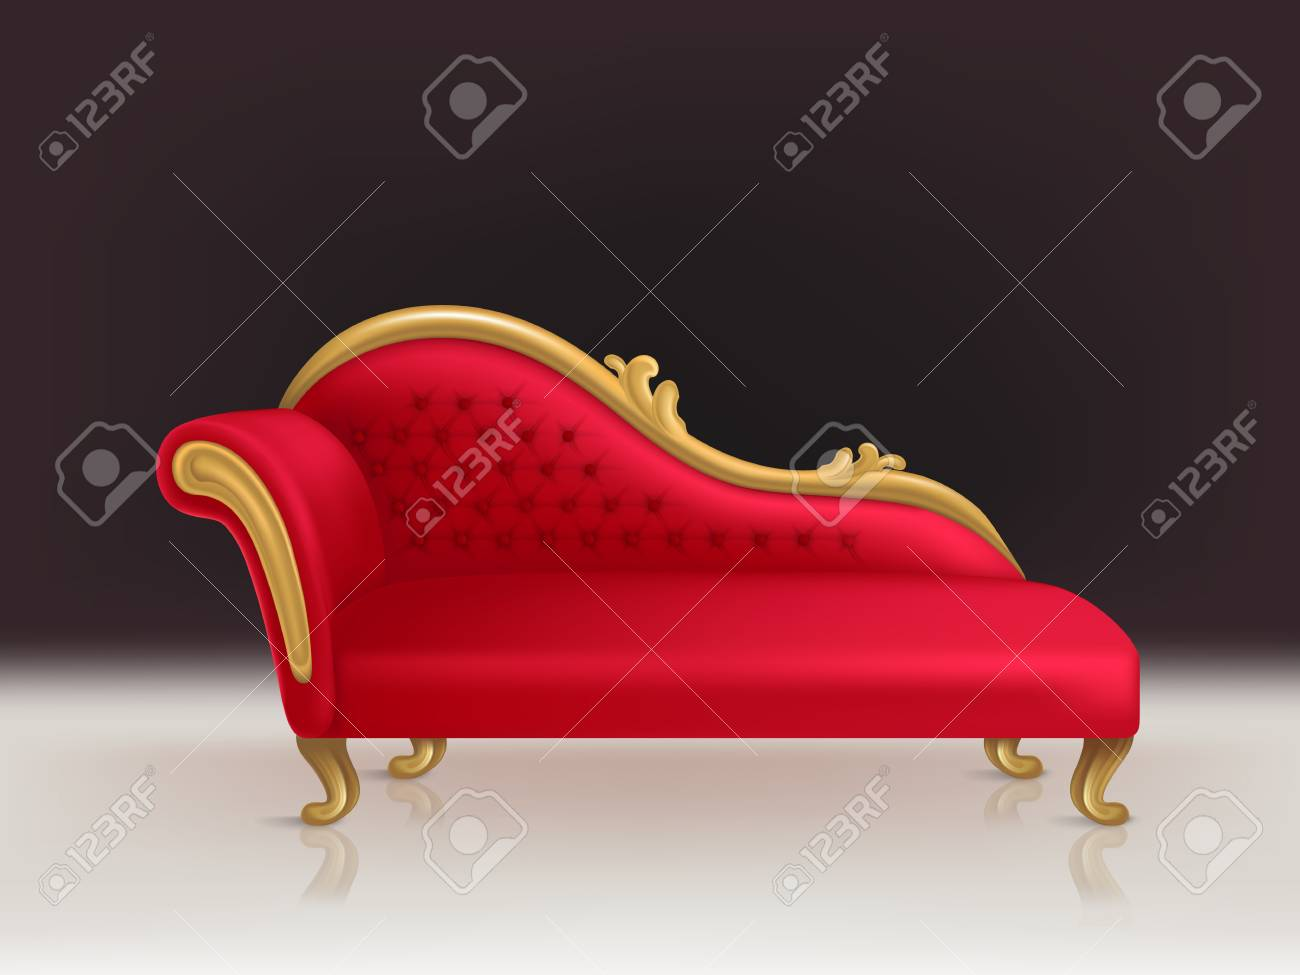 Realistic Luxurious Red Velvet Sofa With Golden Carved Legs On ...